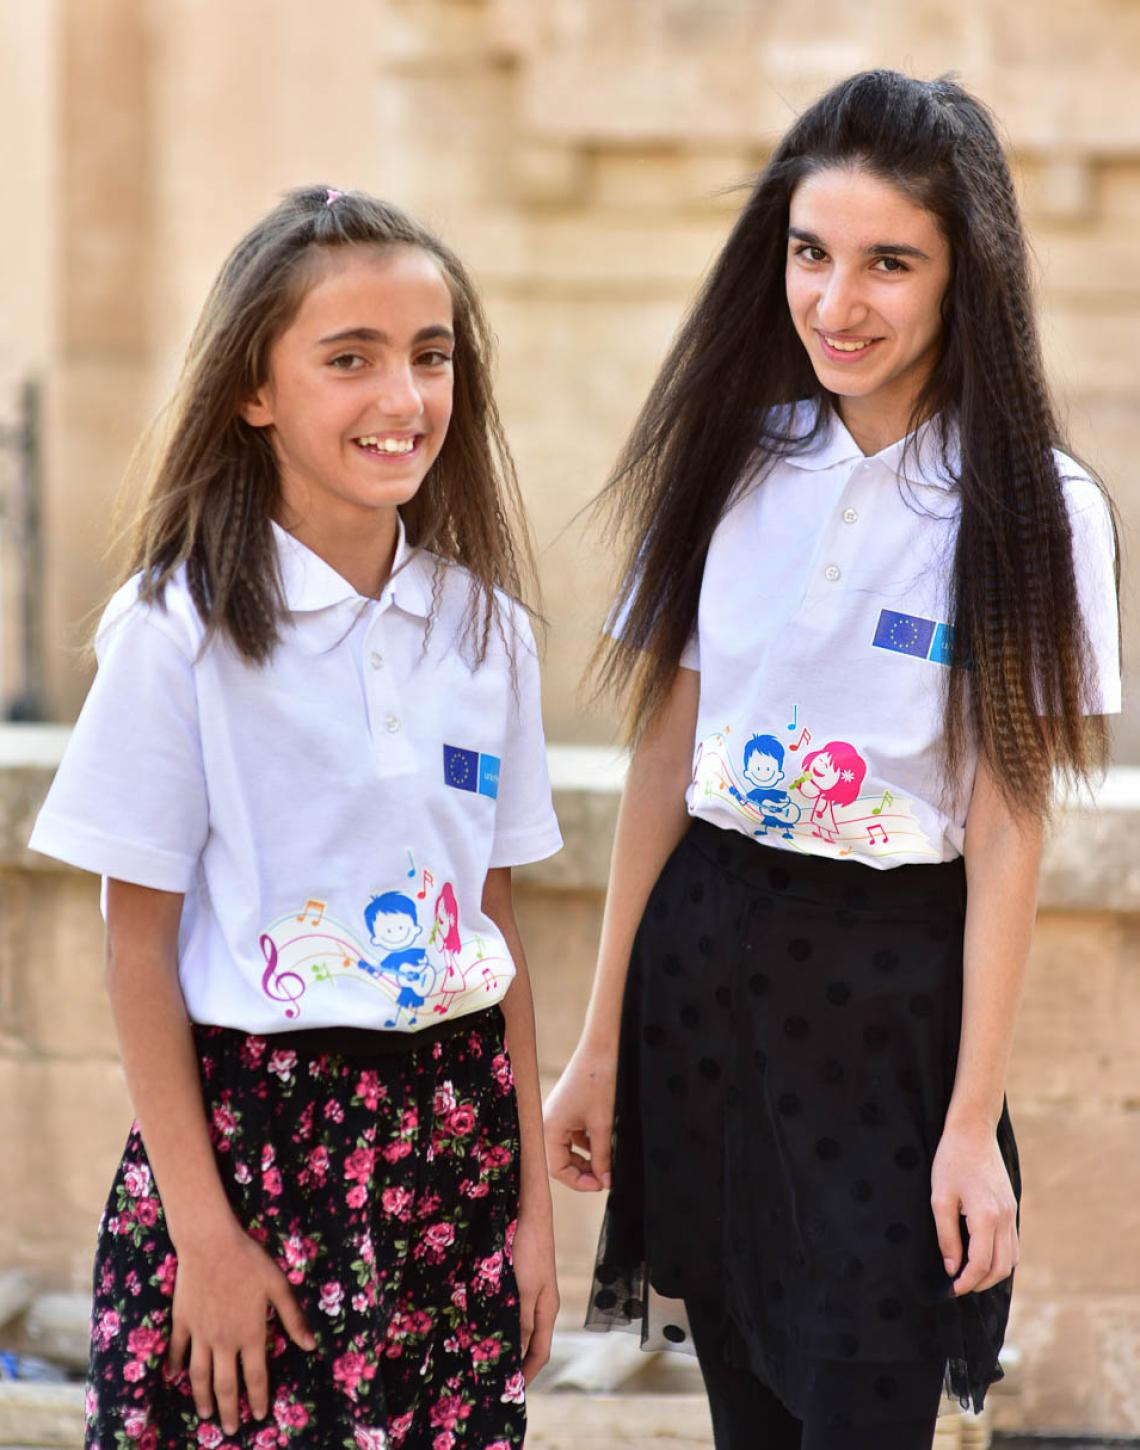 Two girls smiling to the camera